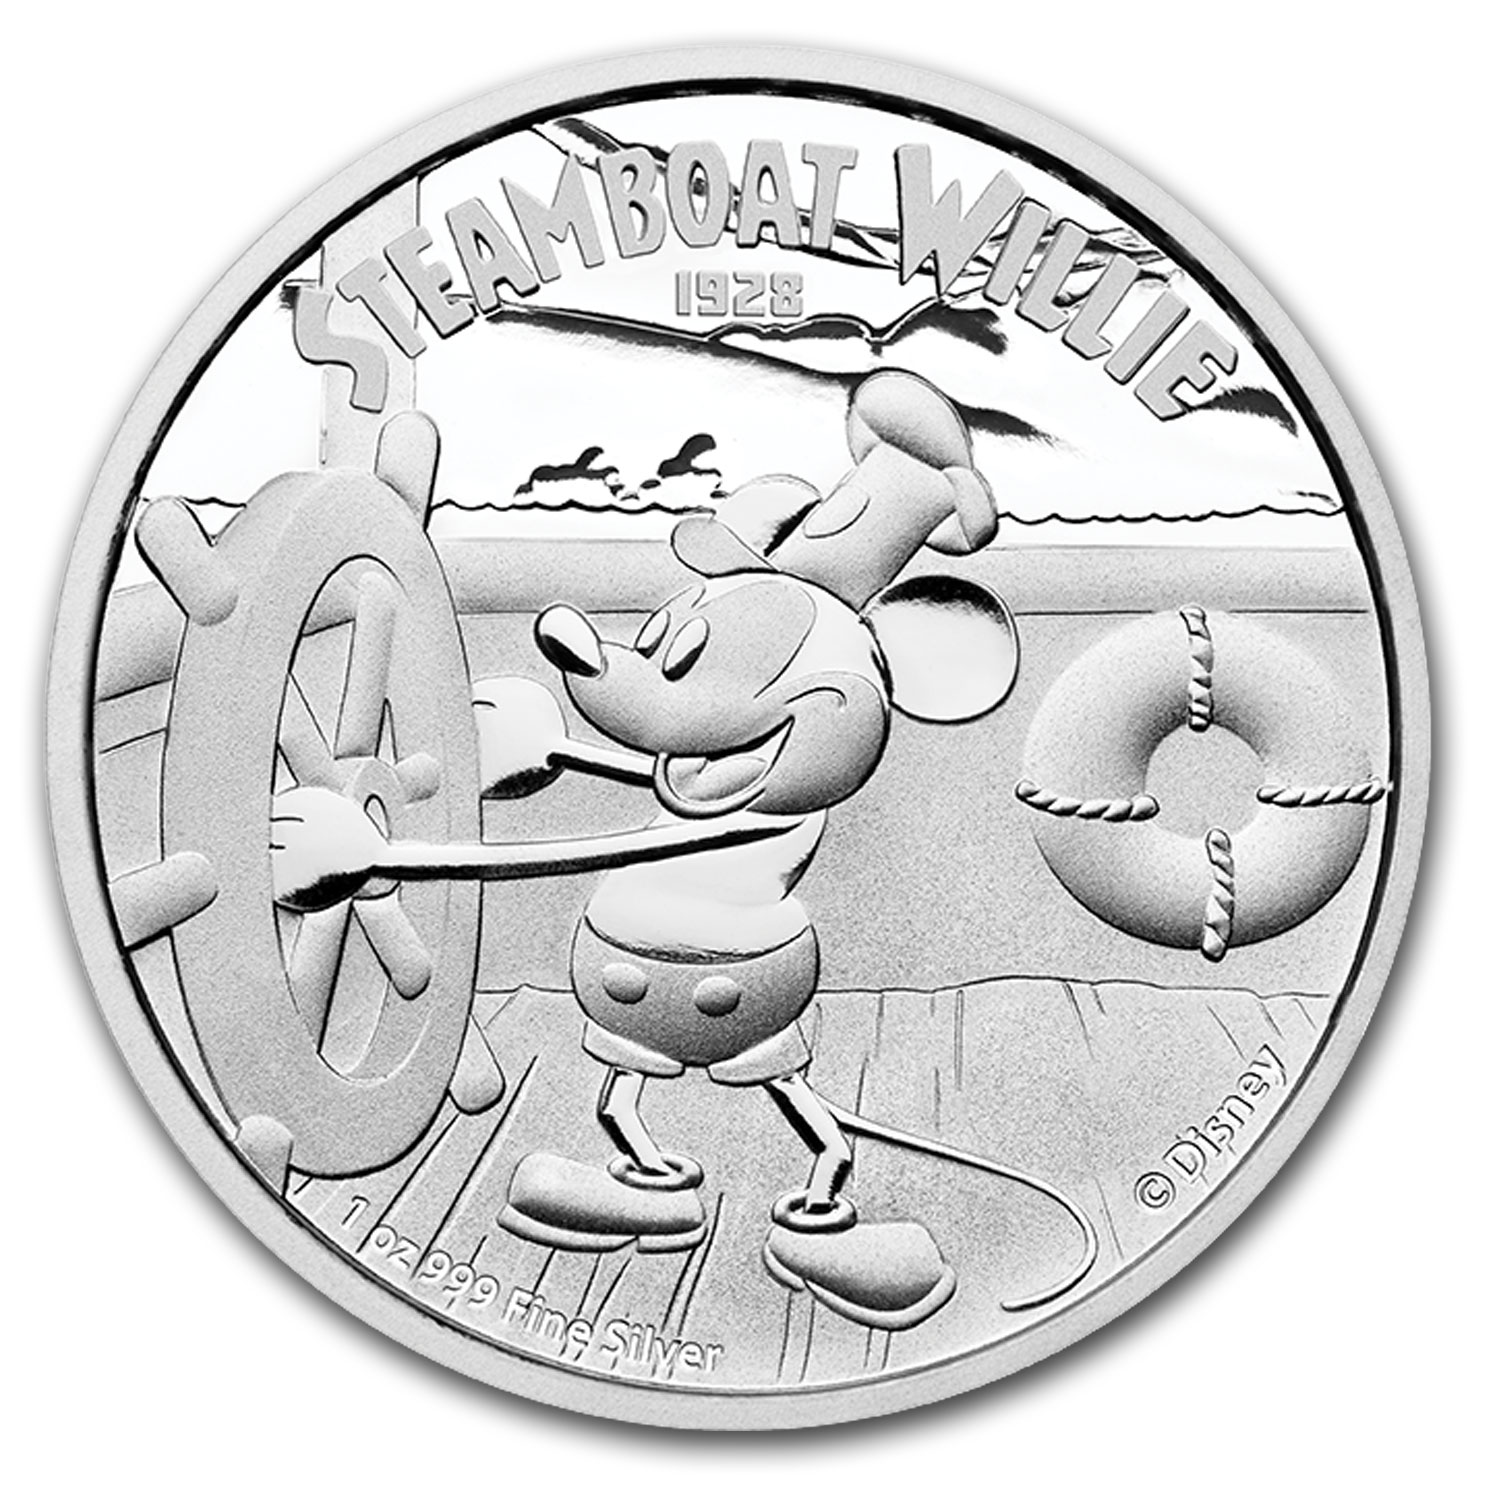 2014 Niue 1 oz Silver $2 Disney Steamboat Willie